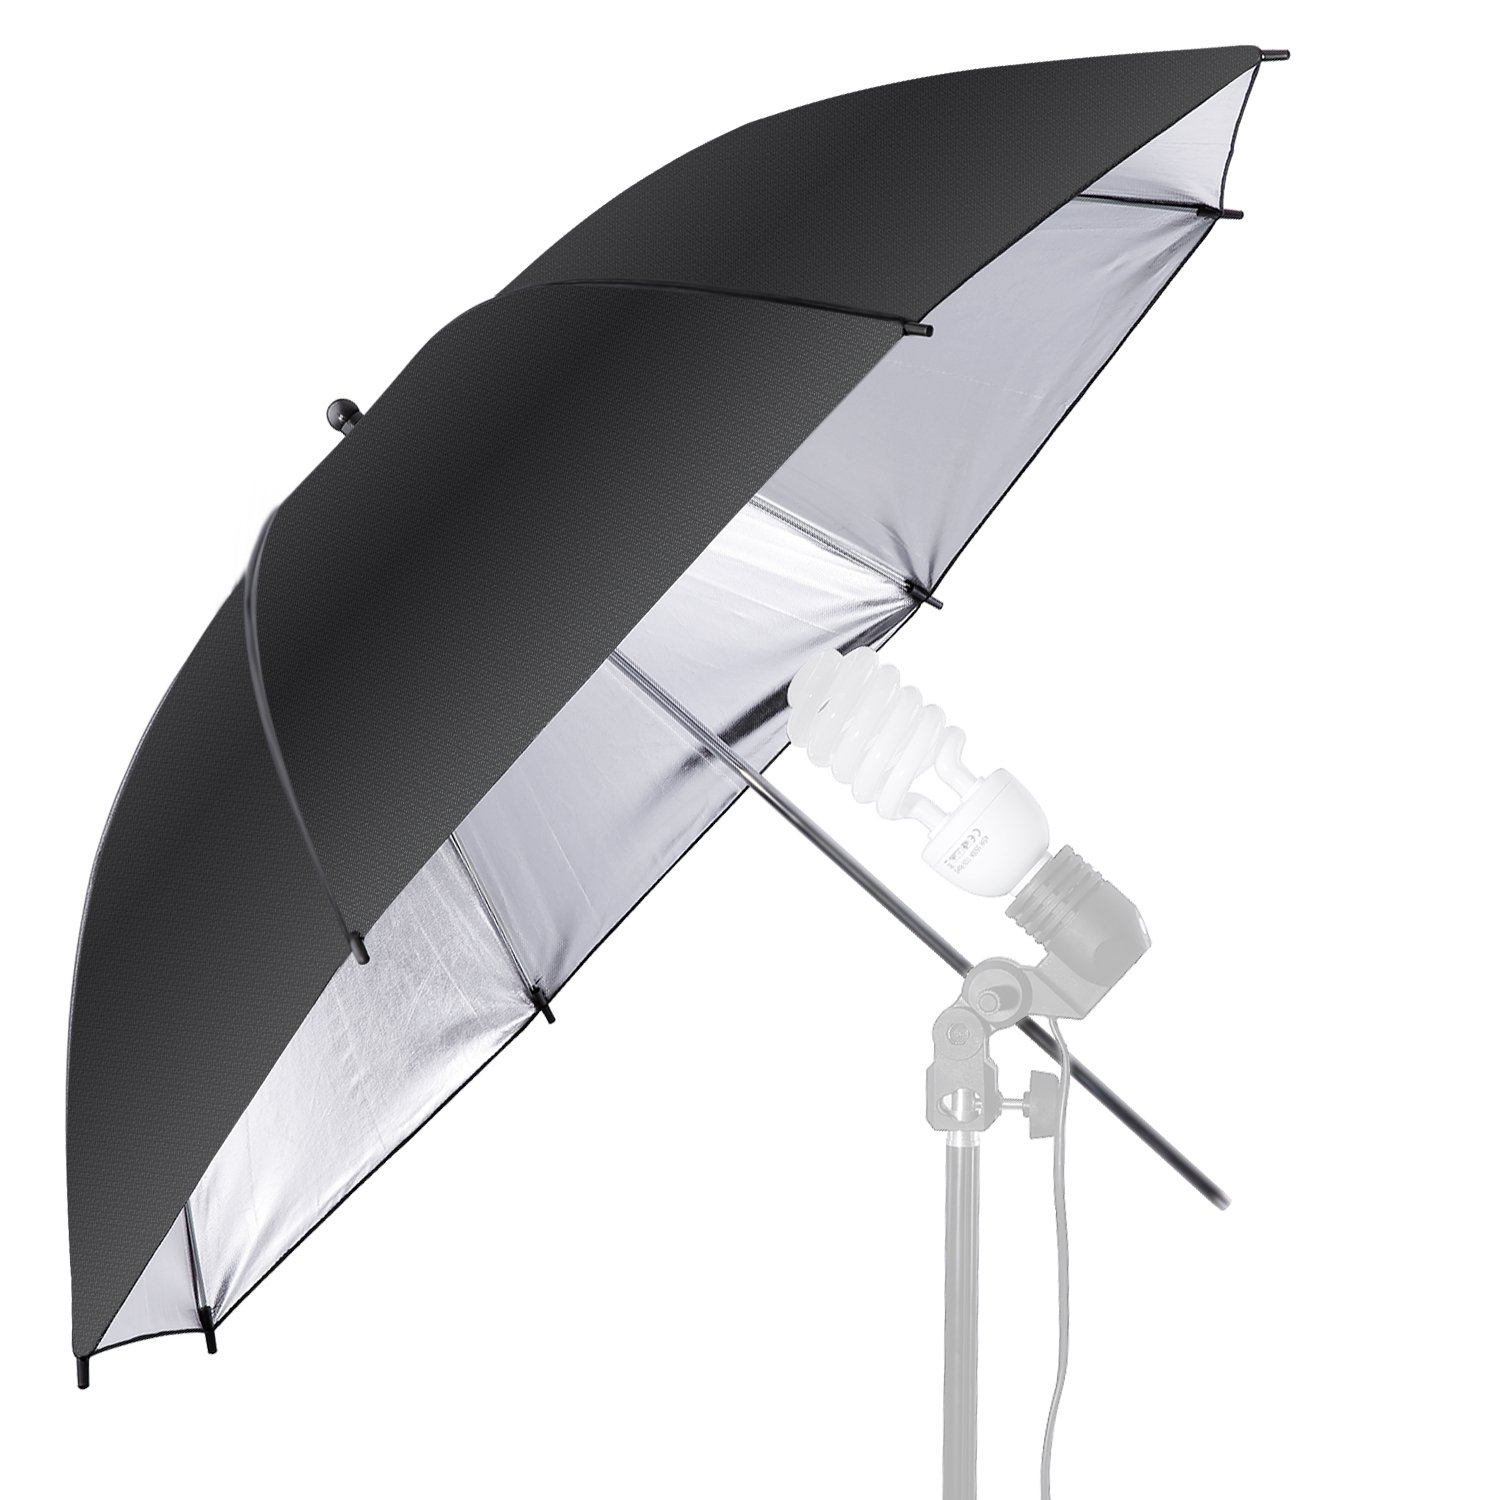 Neewer 36'/91cm Photo Studio Black/Silver Reflective Lighting Umbrella for Photography Studio Flash Light and Location Shoots